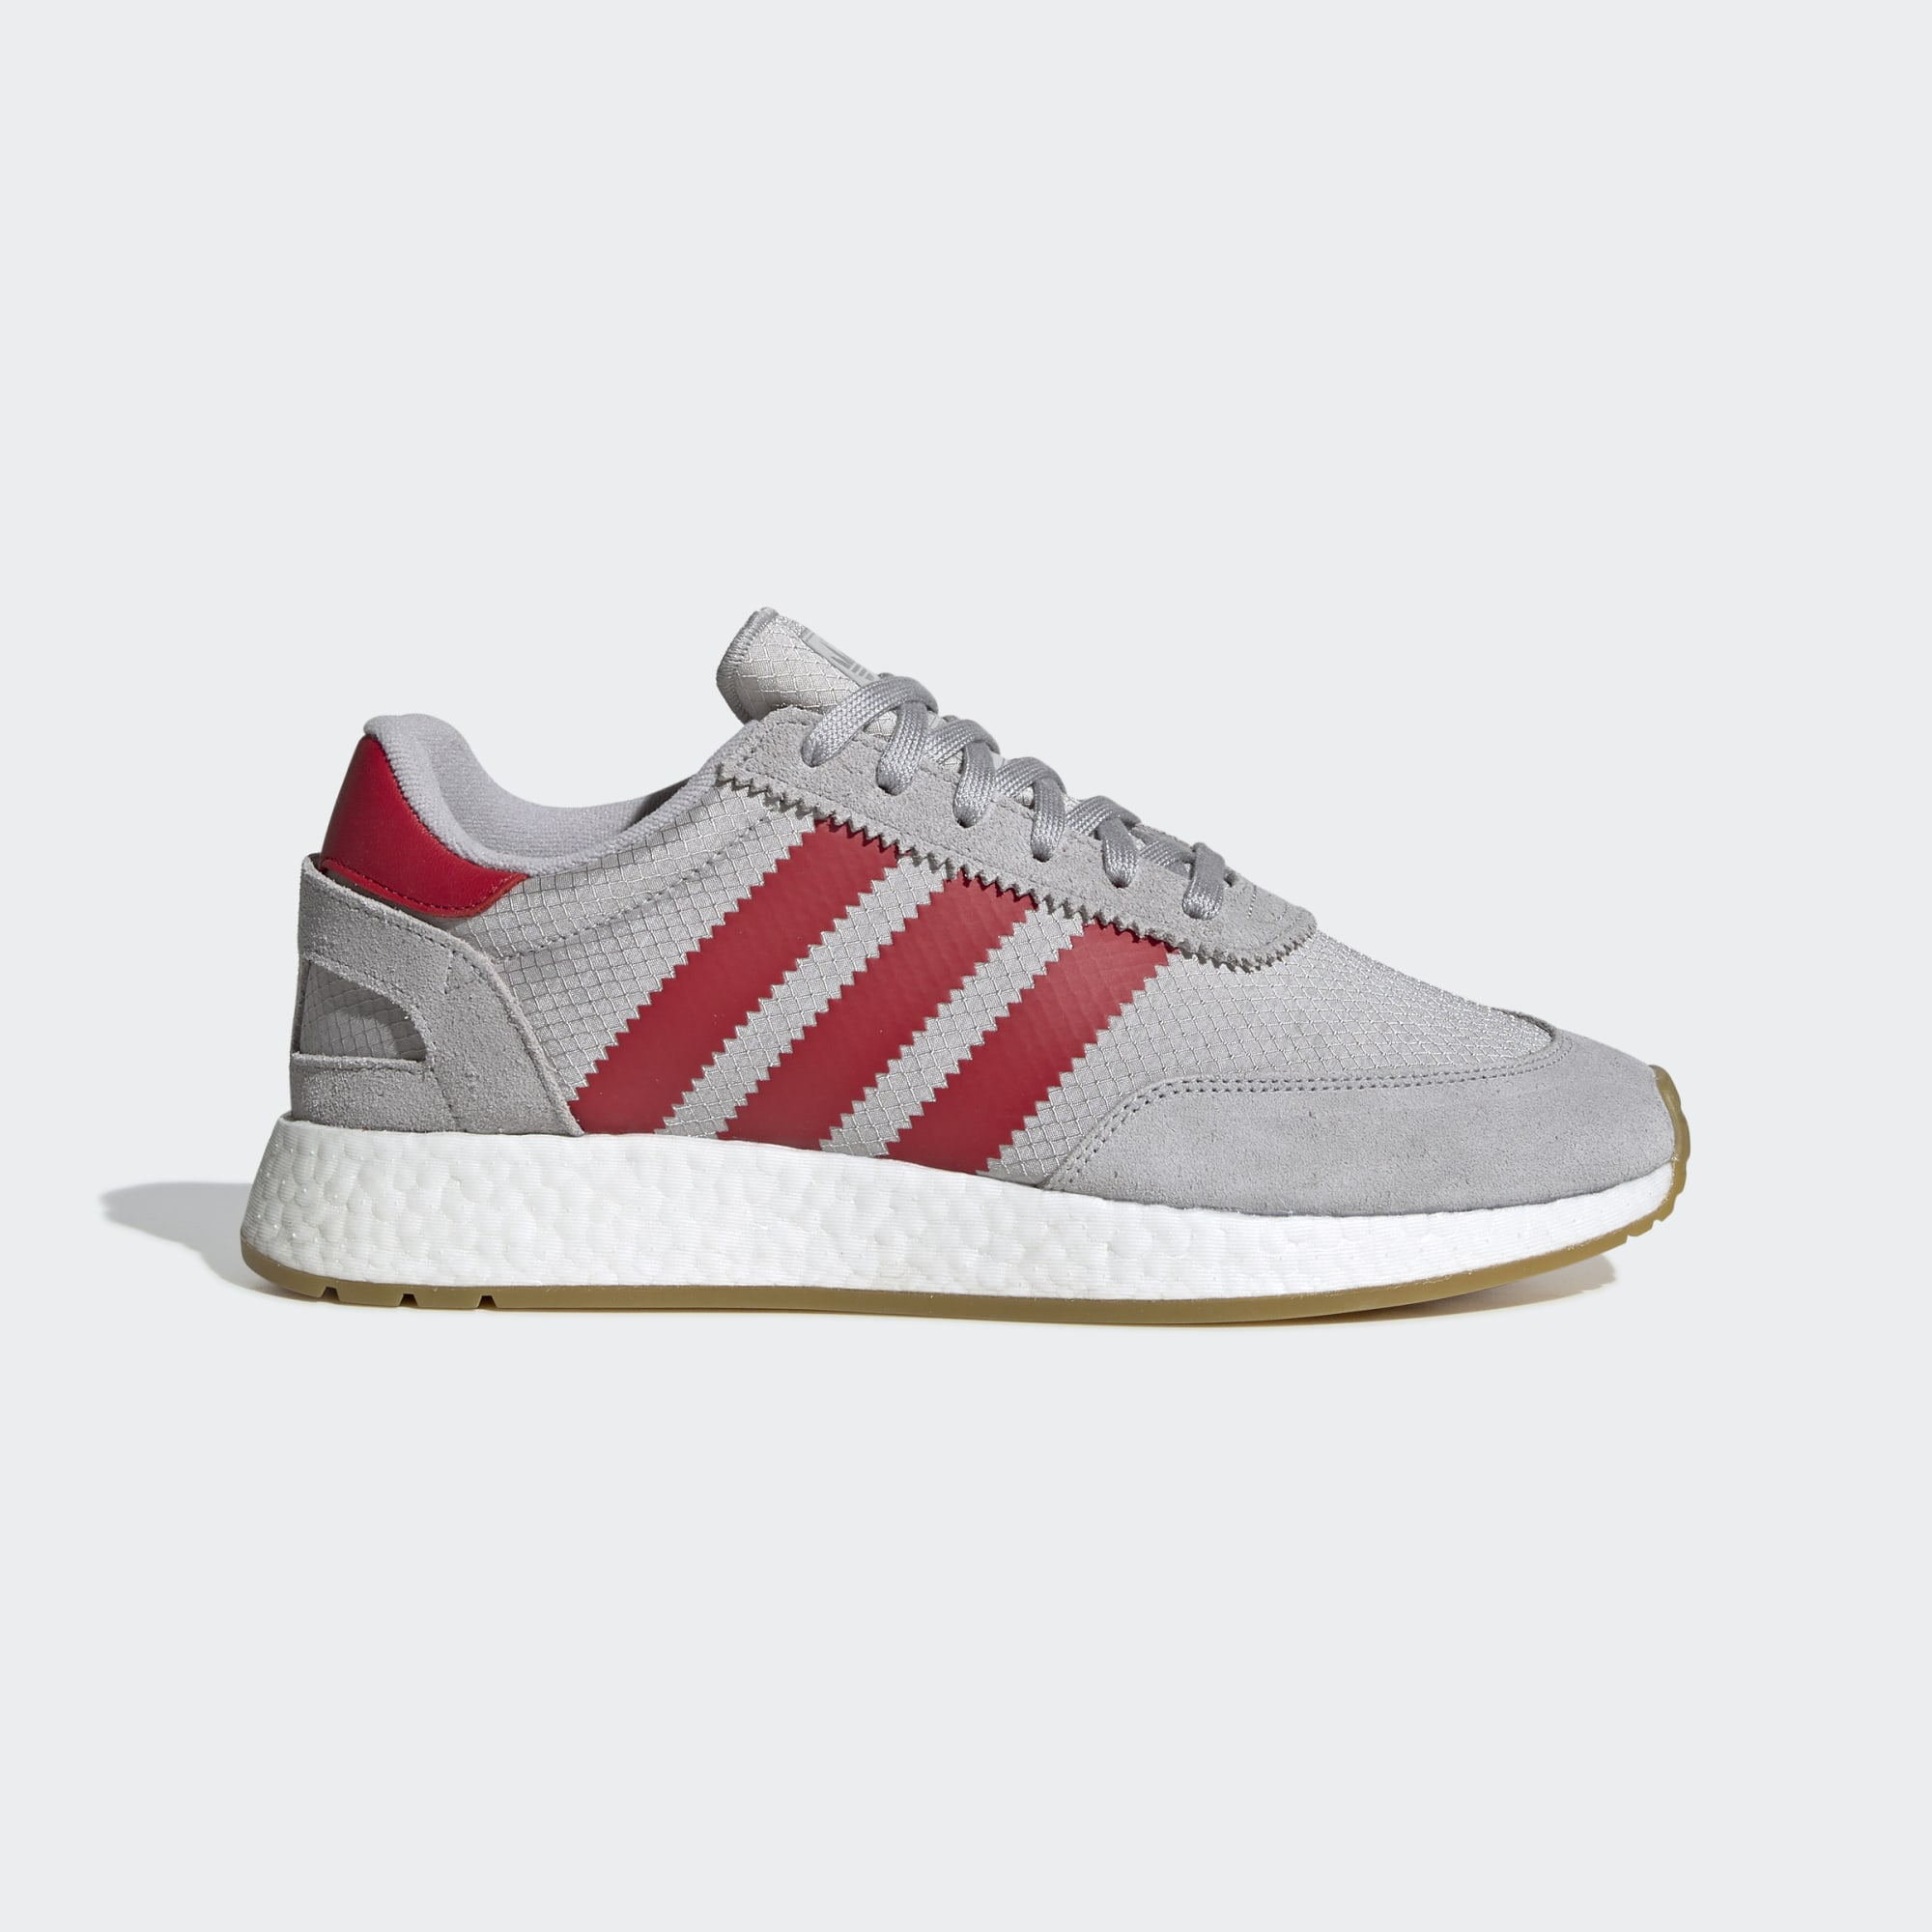 Adidas I-5923 Shoes - Grey Two / Scarlet / Gum